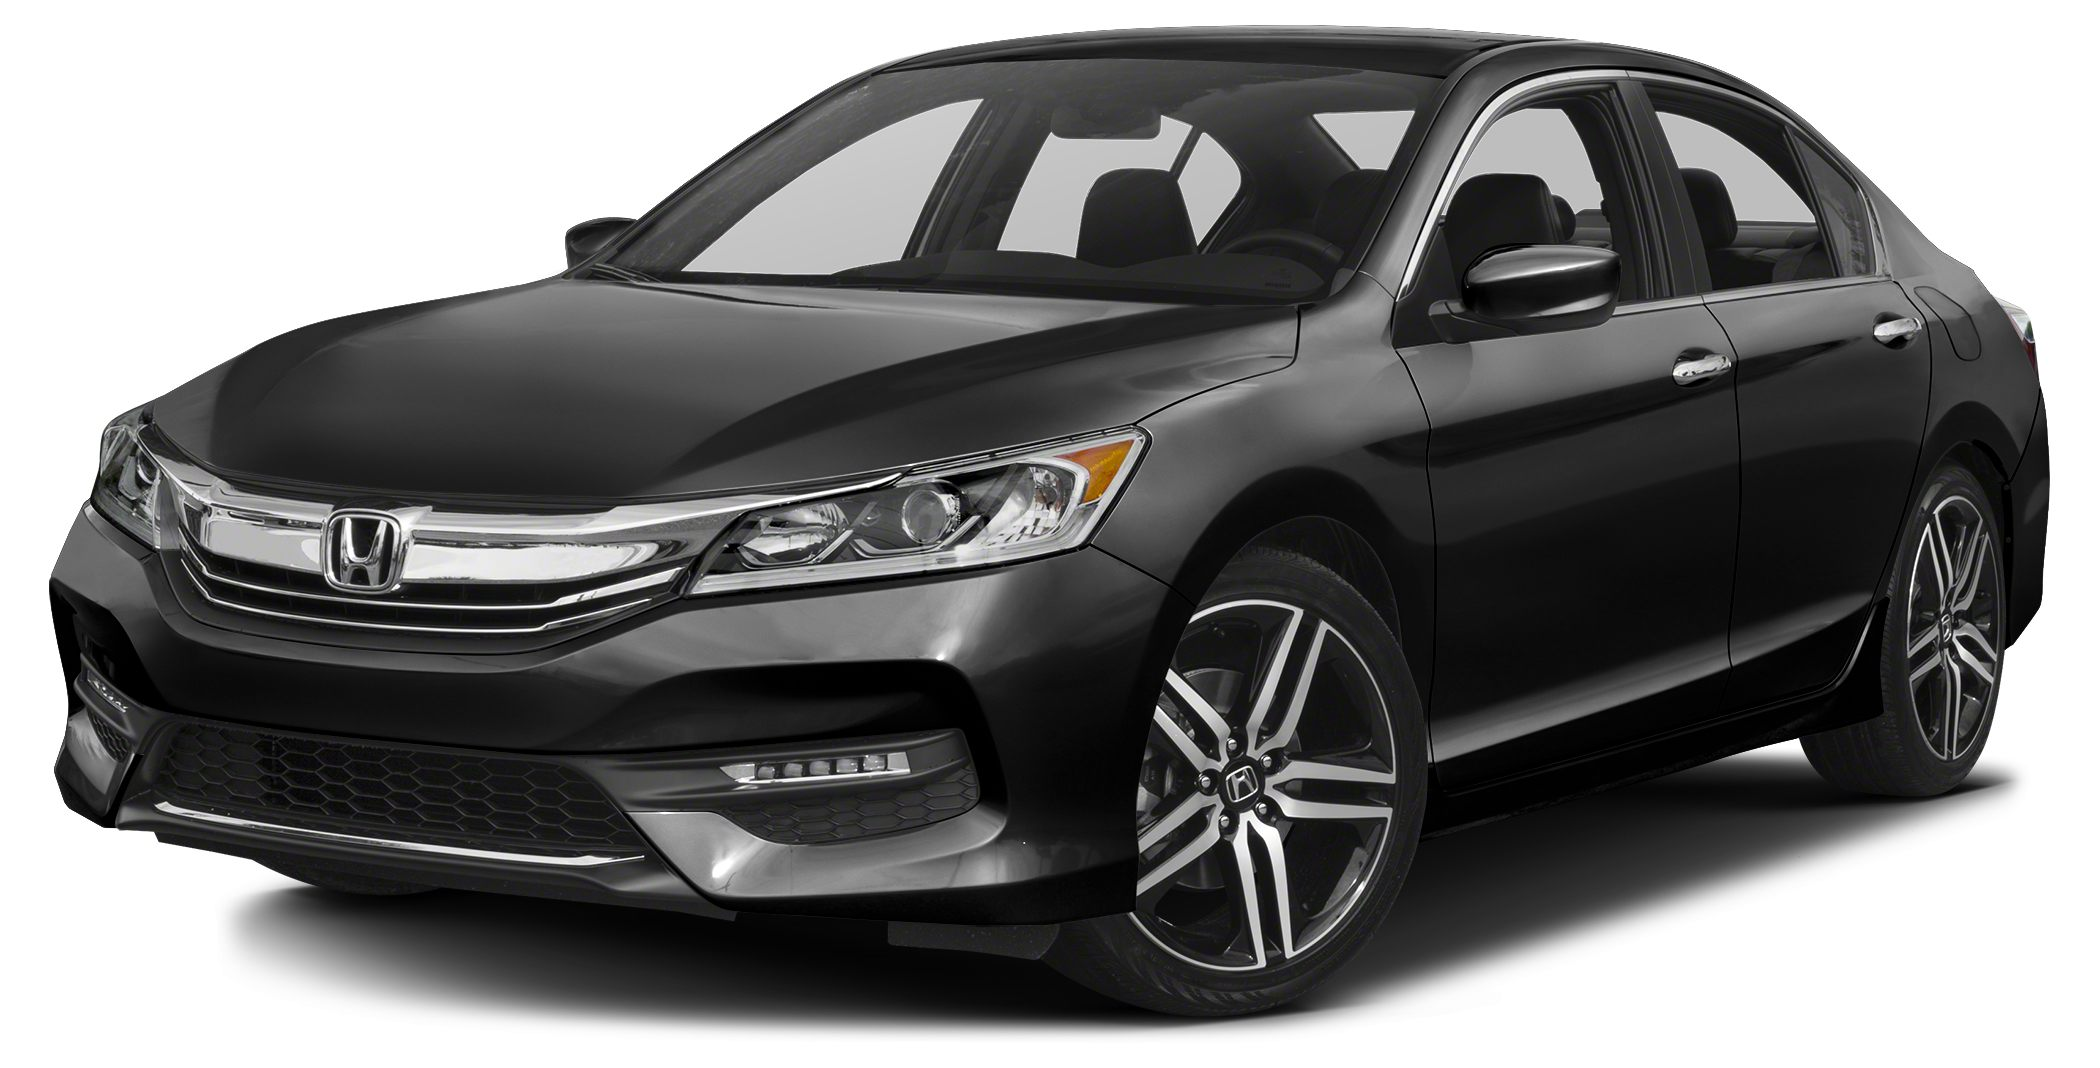 2016 Honda Accord Sport Excellent Condition GREAT MILES 6433 Crystal Black Pearl exterior and B